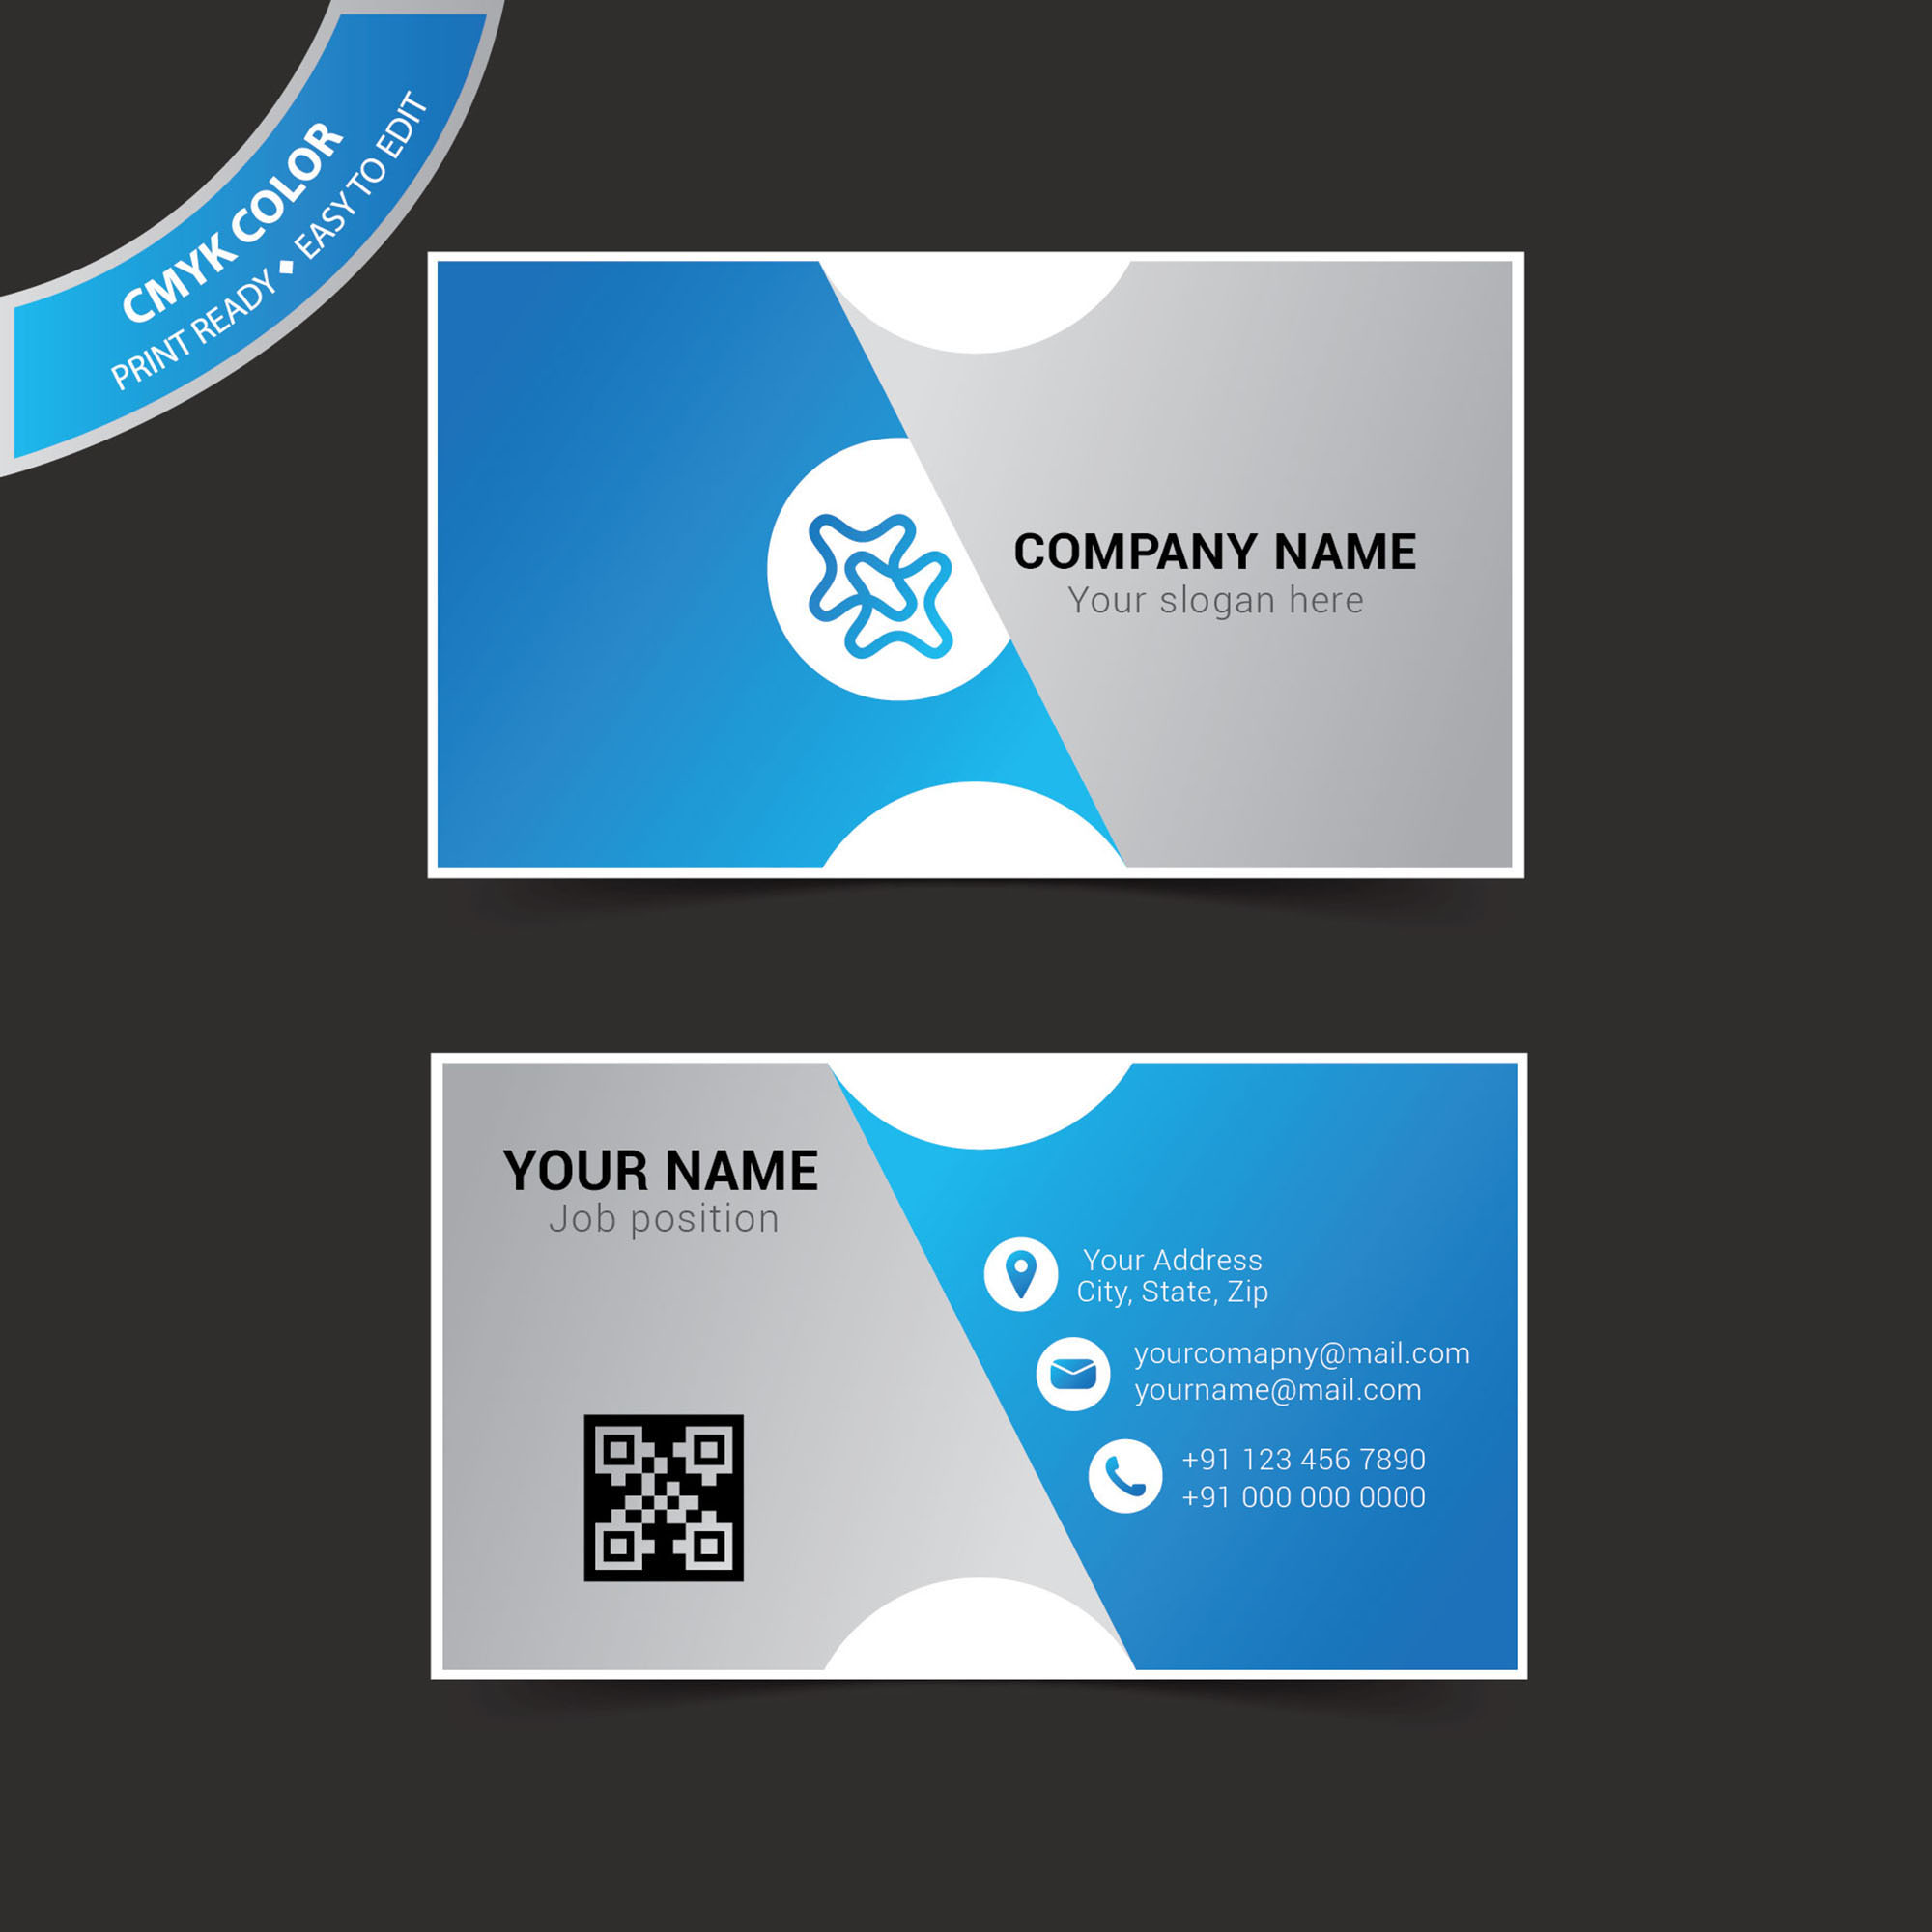 Business card template illustrator free vector wisxi abstract business card design business creative graphic layout template reheart Gallery